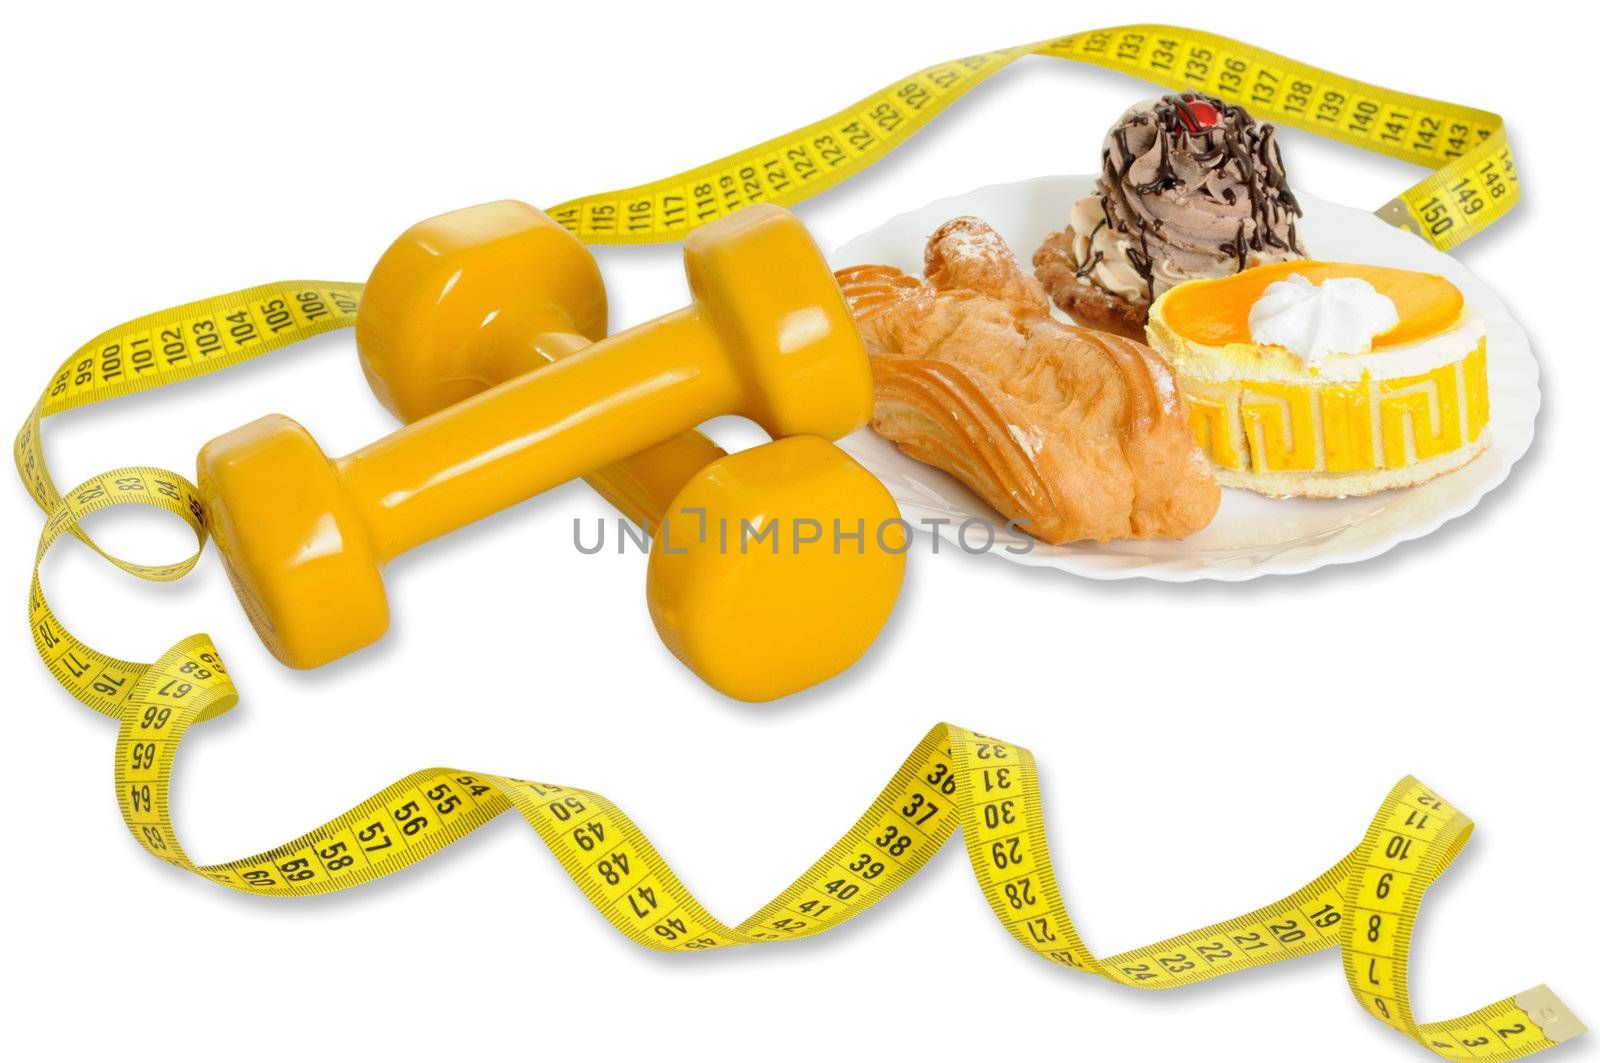 tape measure,cakes and dumbbells isolated on white background